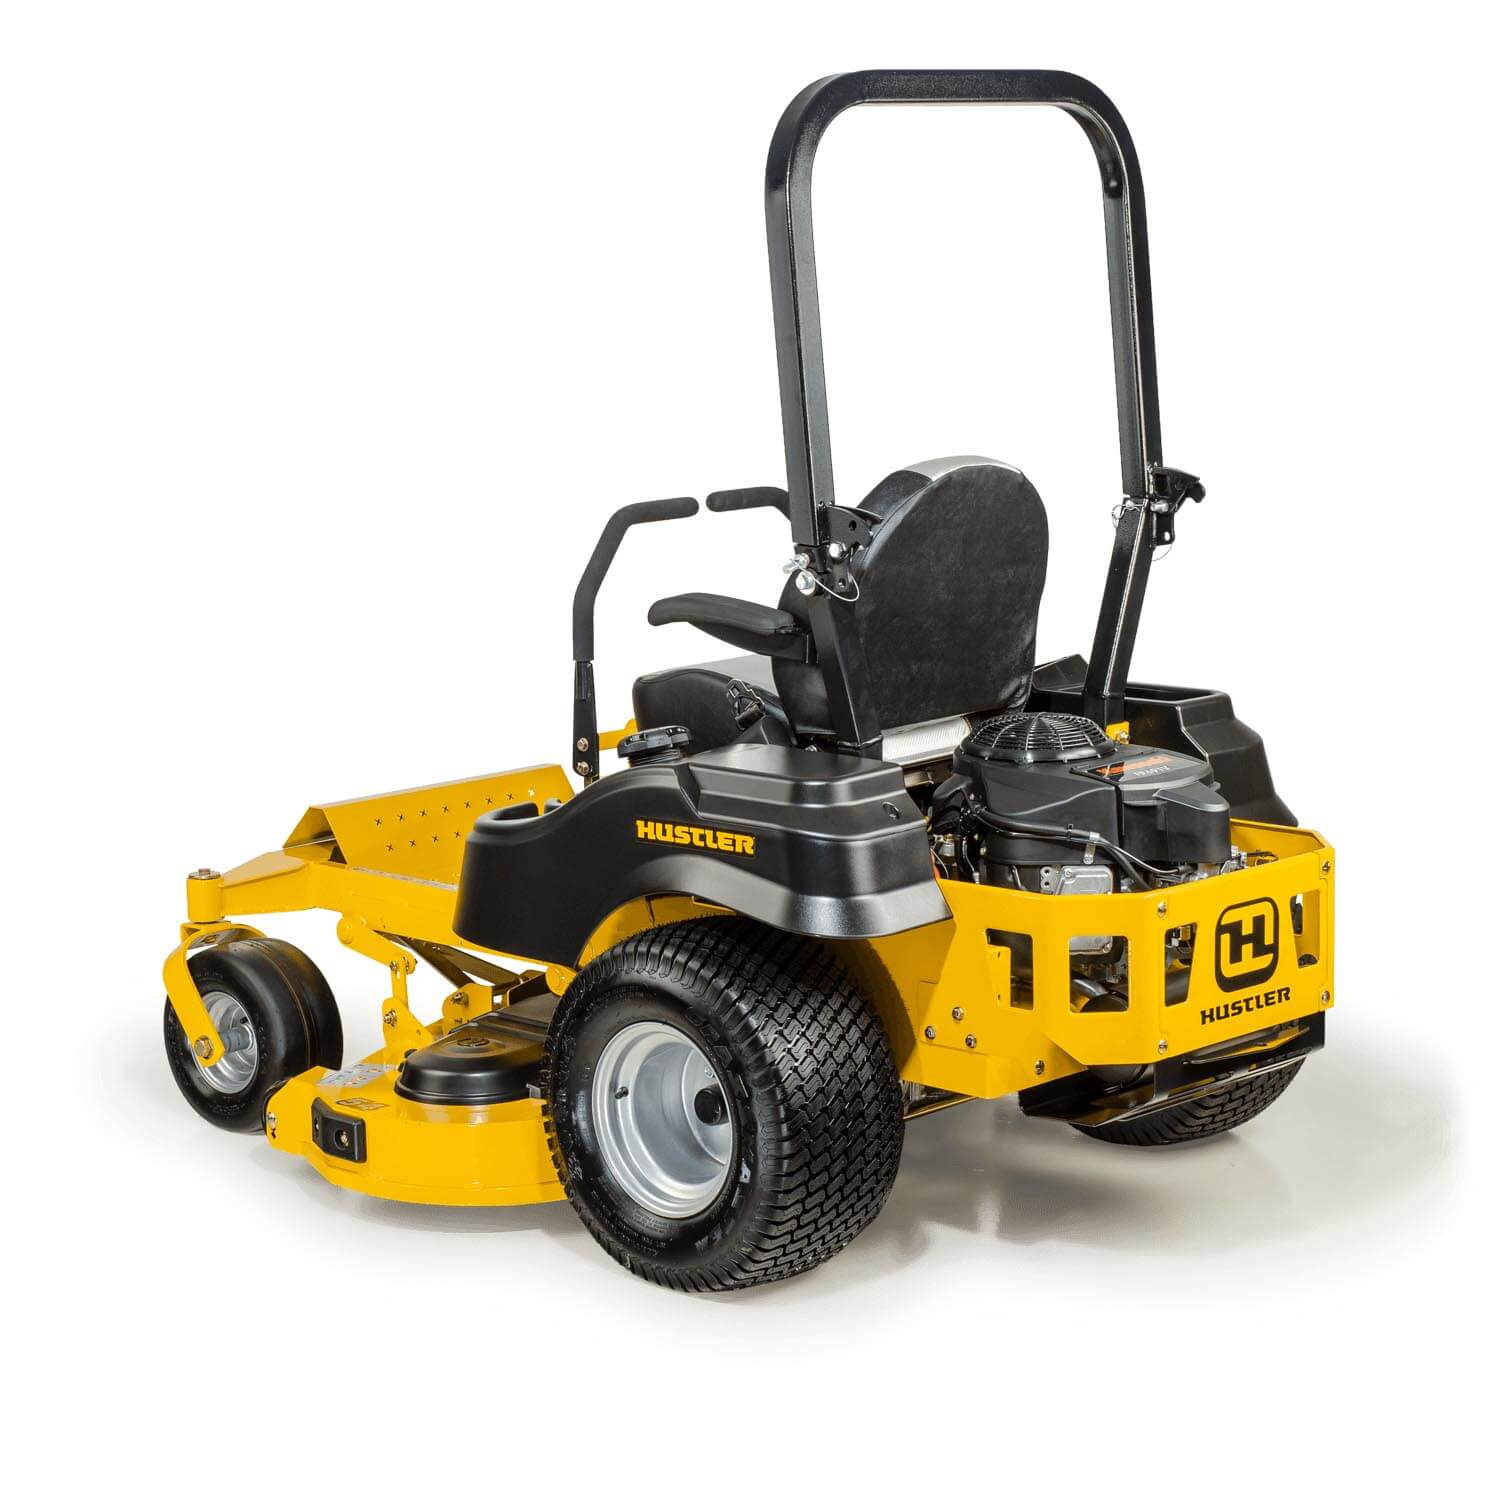 Image of rear 3 quarters of a yellow riding mower showing the trim edge of the deck